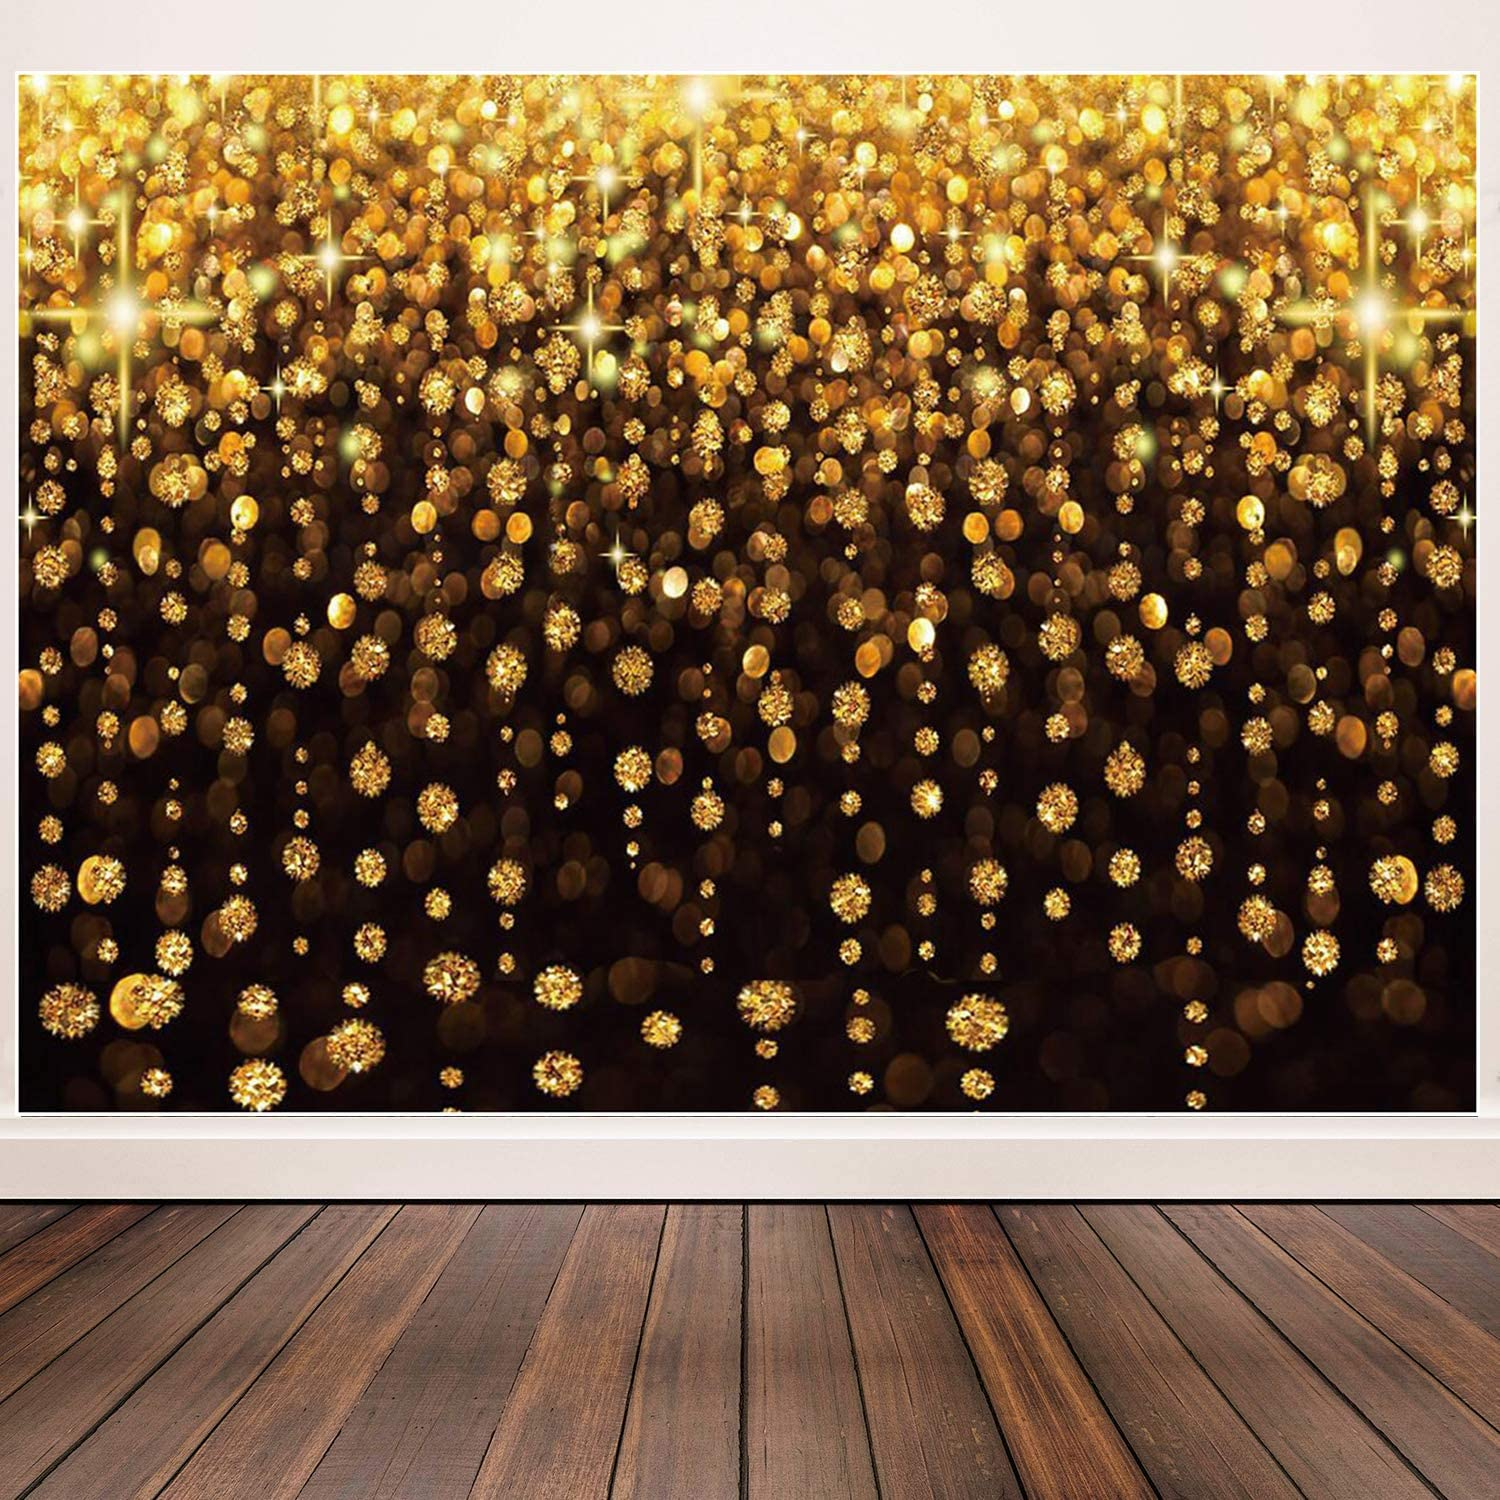 Negeek 7x5ft Gold Bokeh Spots Ployester Backdrop for Photo Booth Shoot Graduation Party Supplies 2020 Prom Wedding Selfie Birthday Party Pictures Glitter Dot Studio Props Photography Background